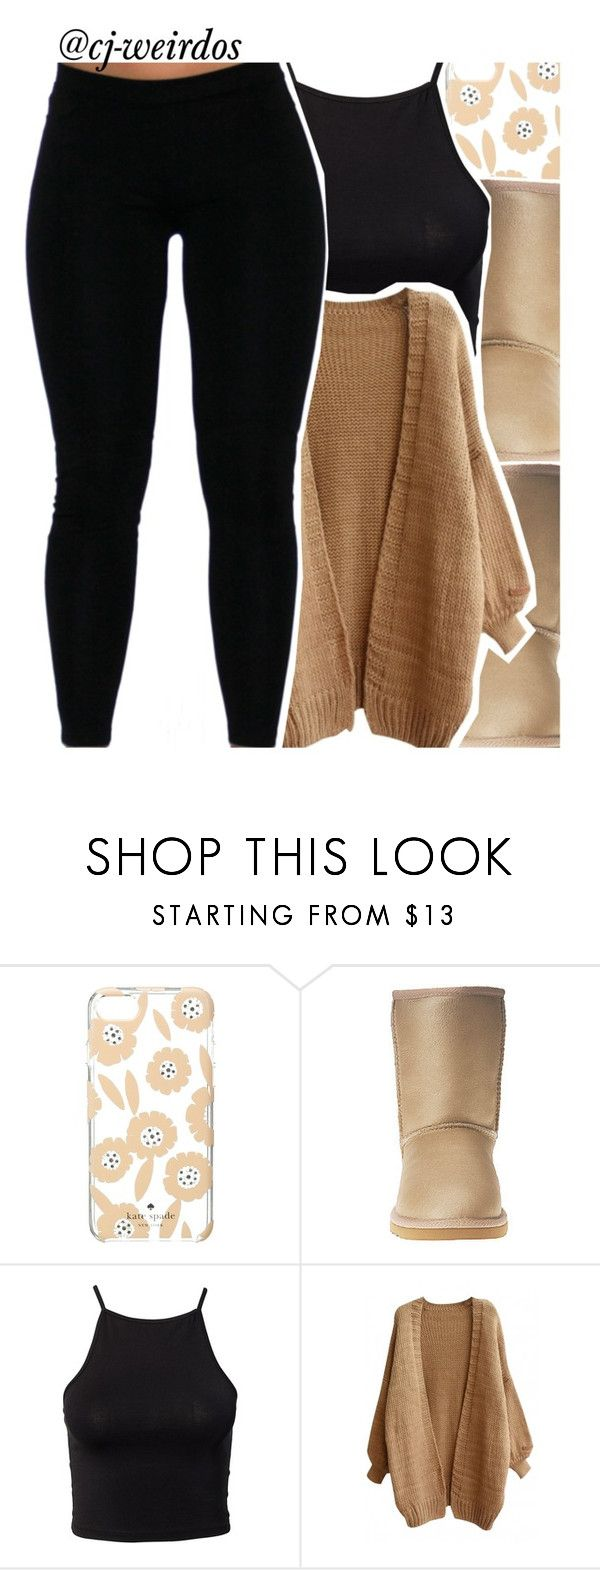 At The Library by cj-weirdos ❤ liked on Polyvore featuring Kate Spade, UGG Australia and NLY Trend